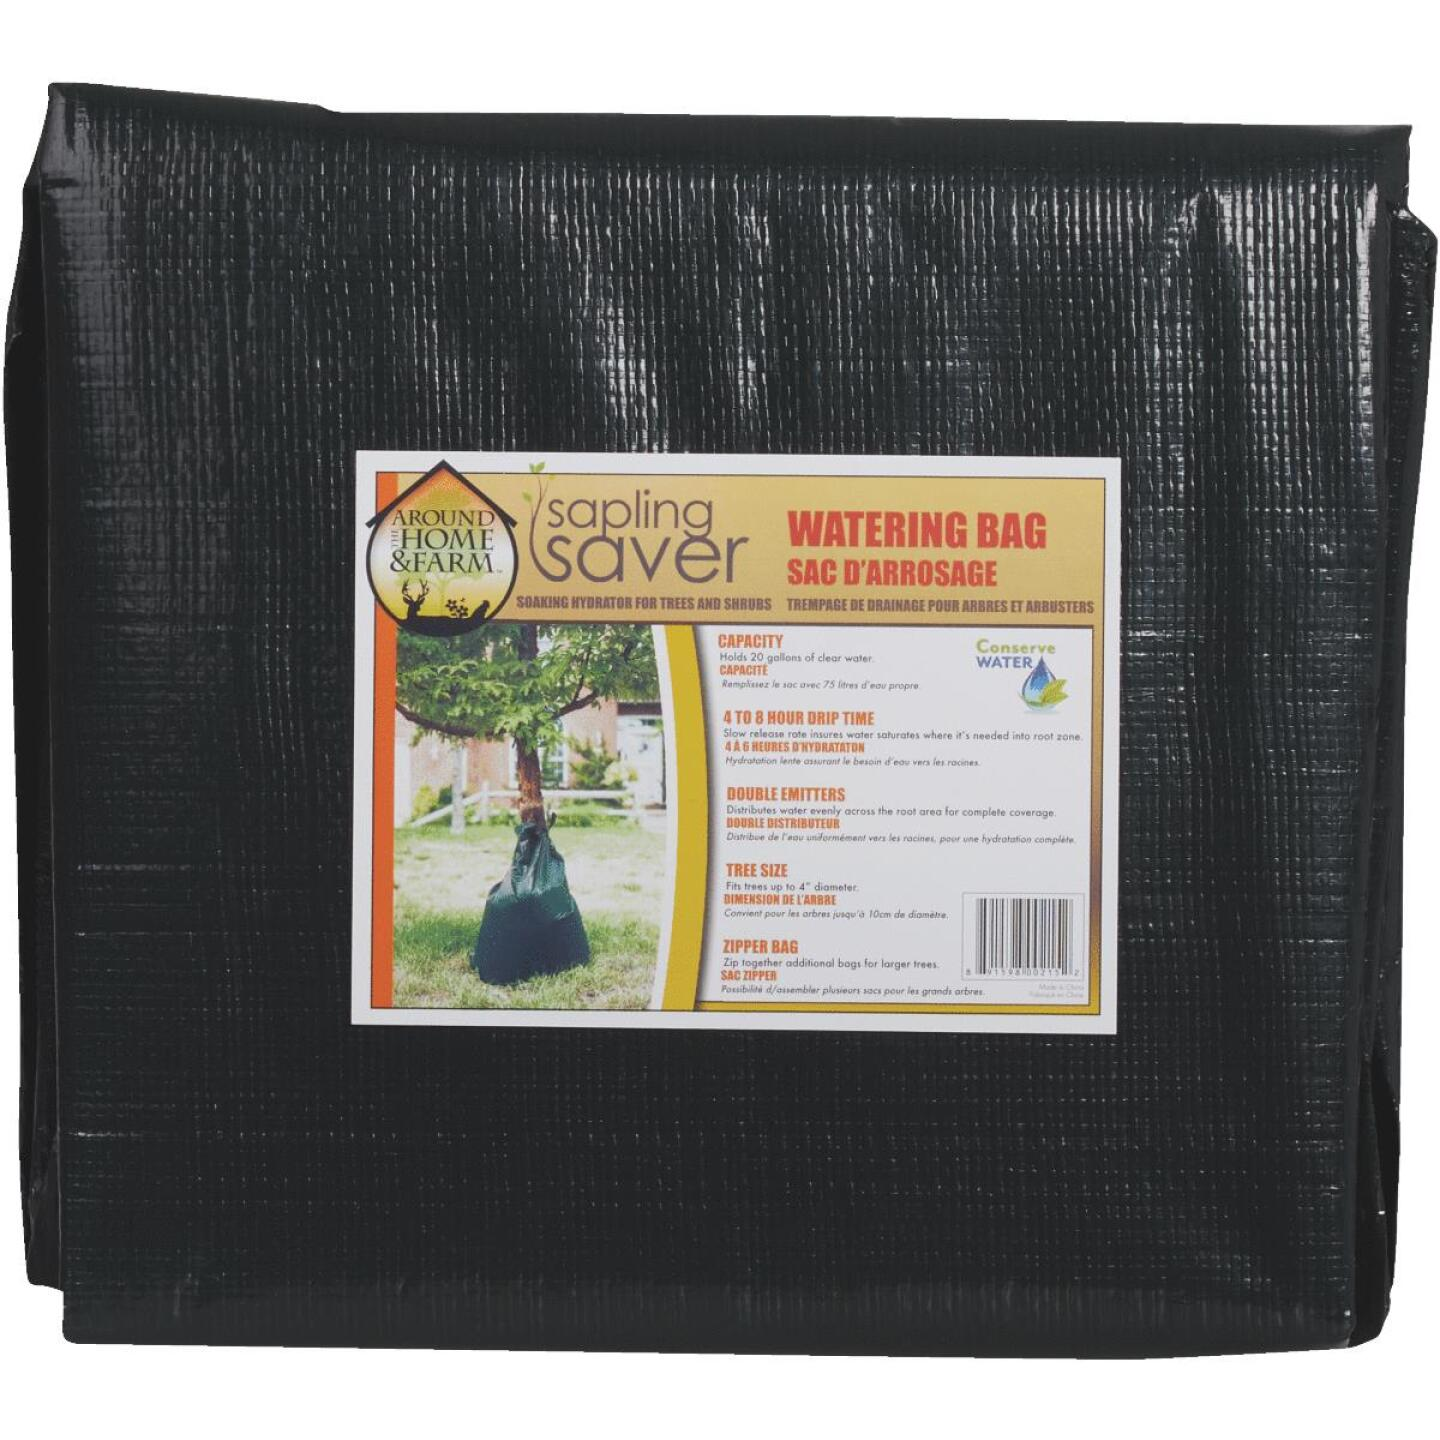 Oak Hill Unlimited Around the Home and Farm 20 Gal. Green Polyethylene Tree Watering Bag Image 2